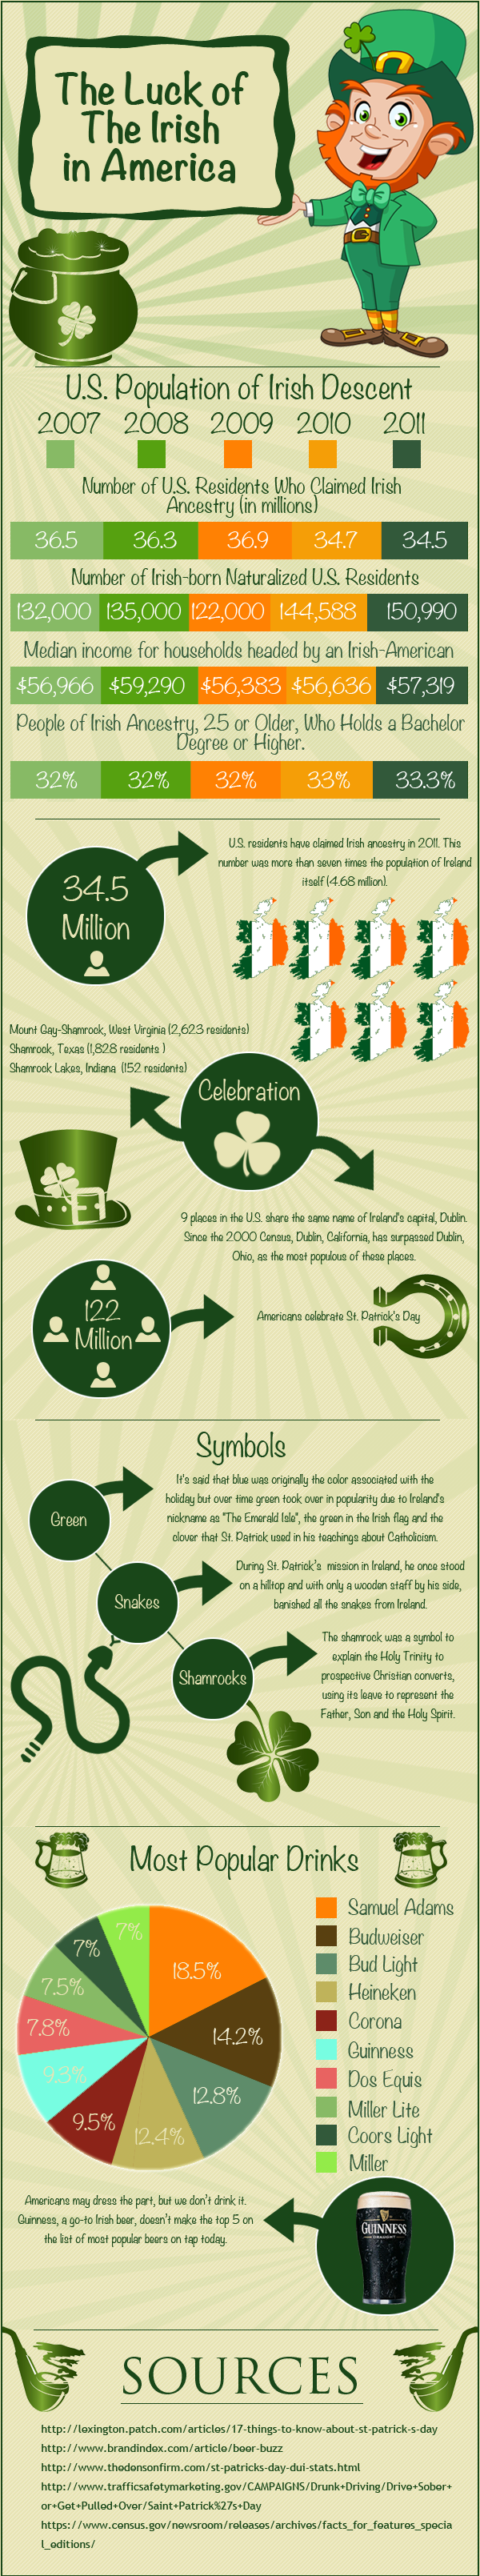 The Luck of The Irish in America